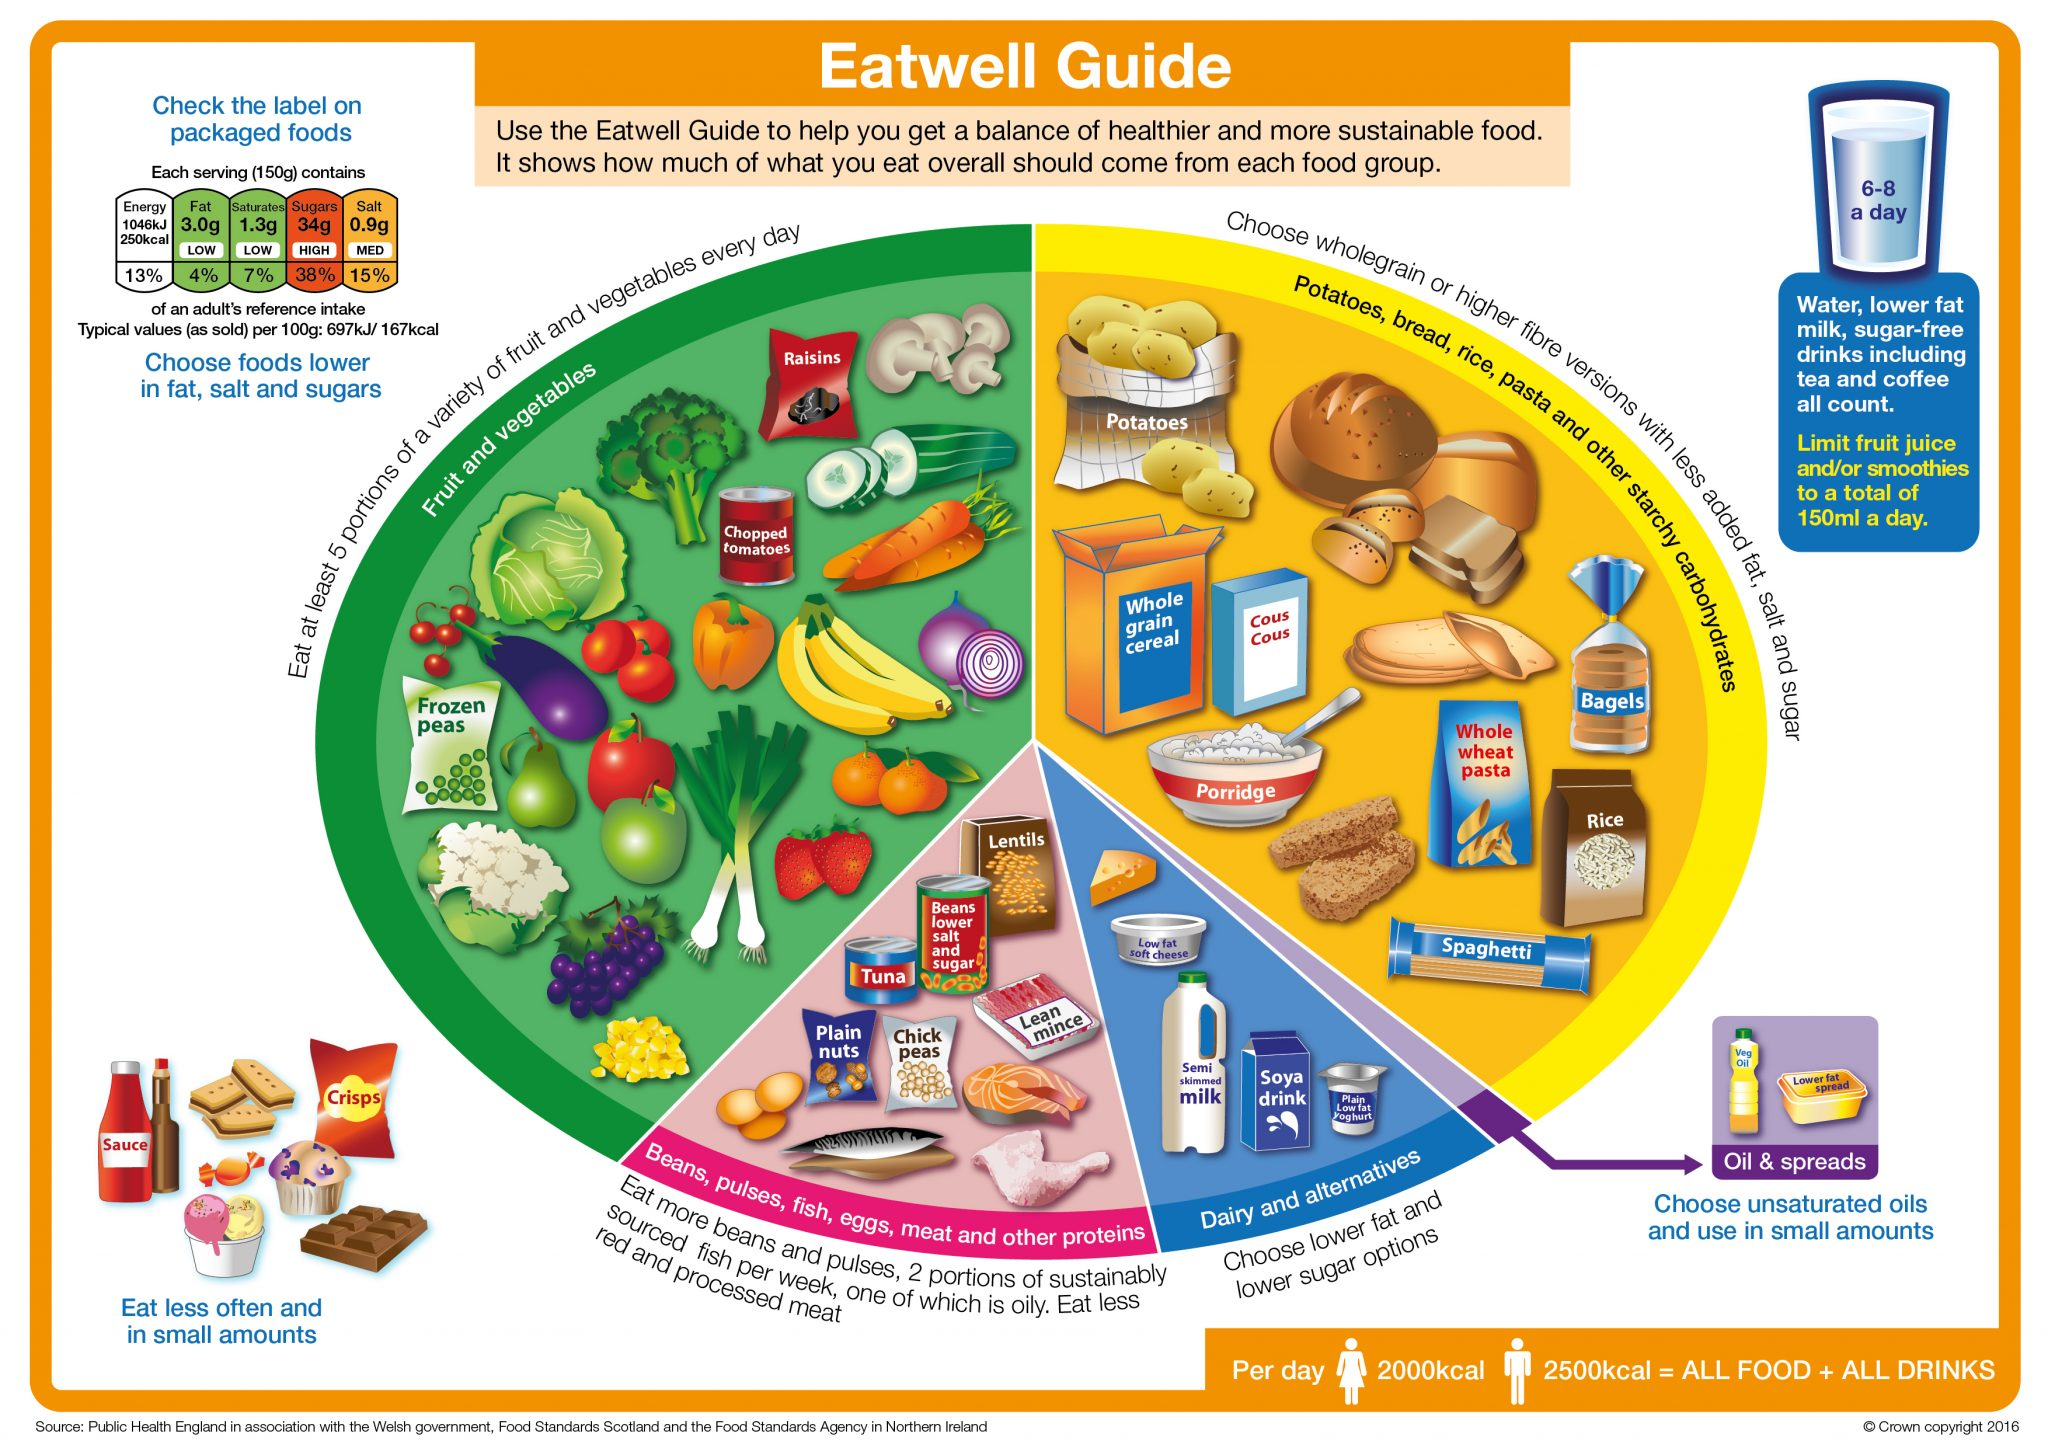 Shocking New 'Eatwell' Guide Heavily Influenced by Processed Food Companies!